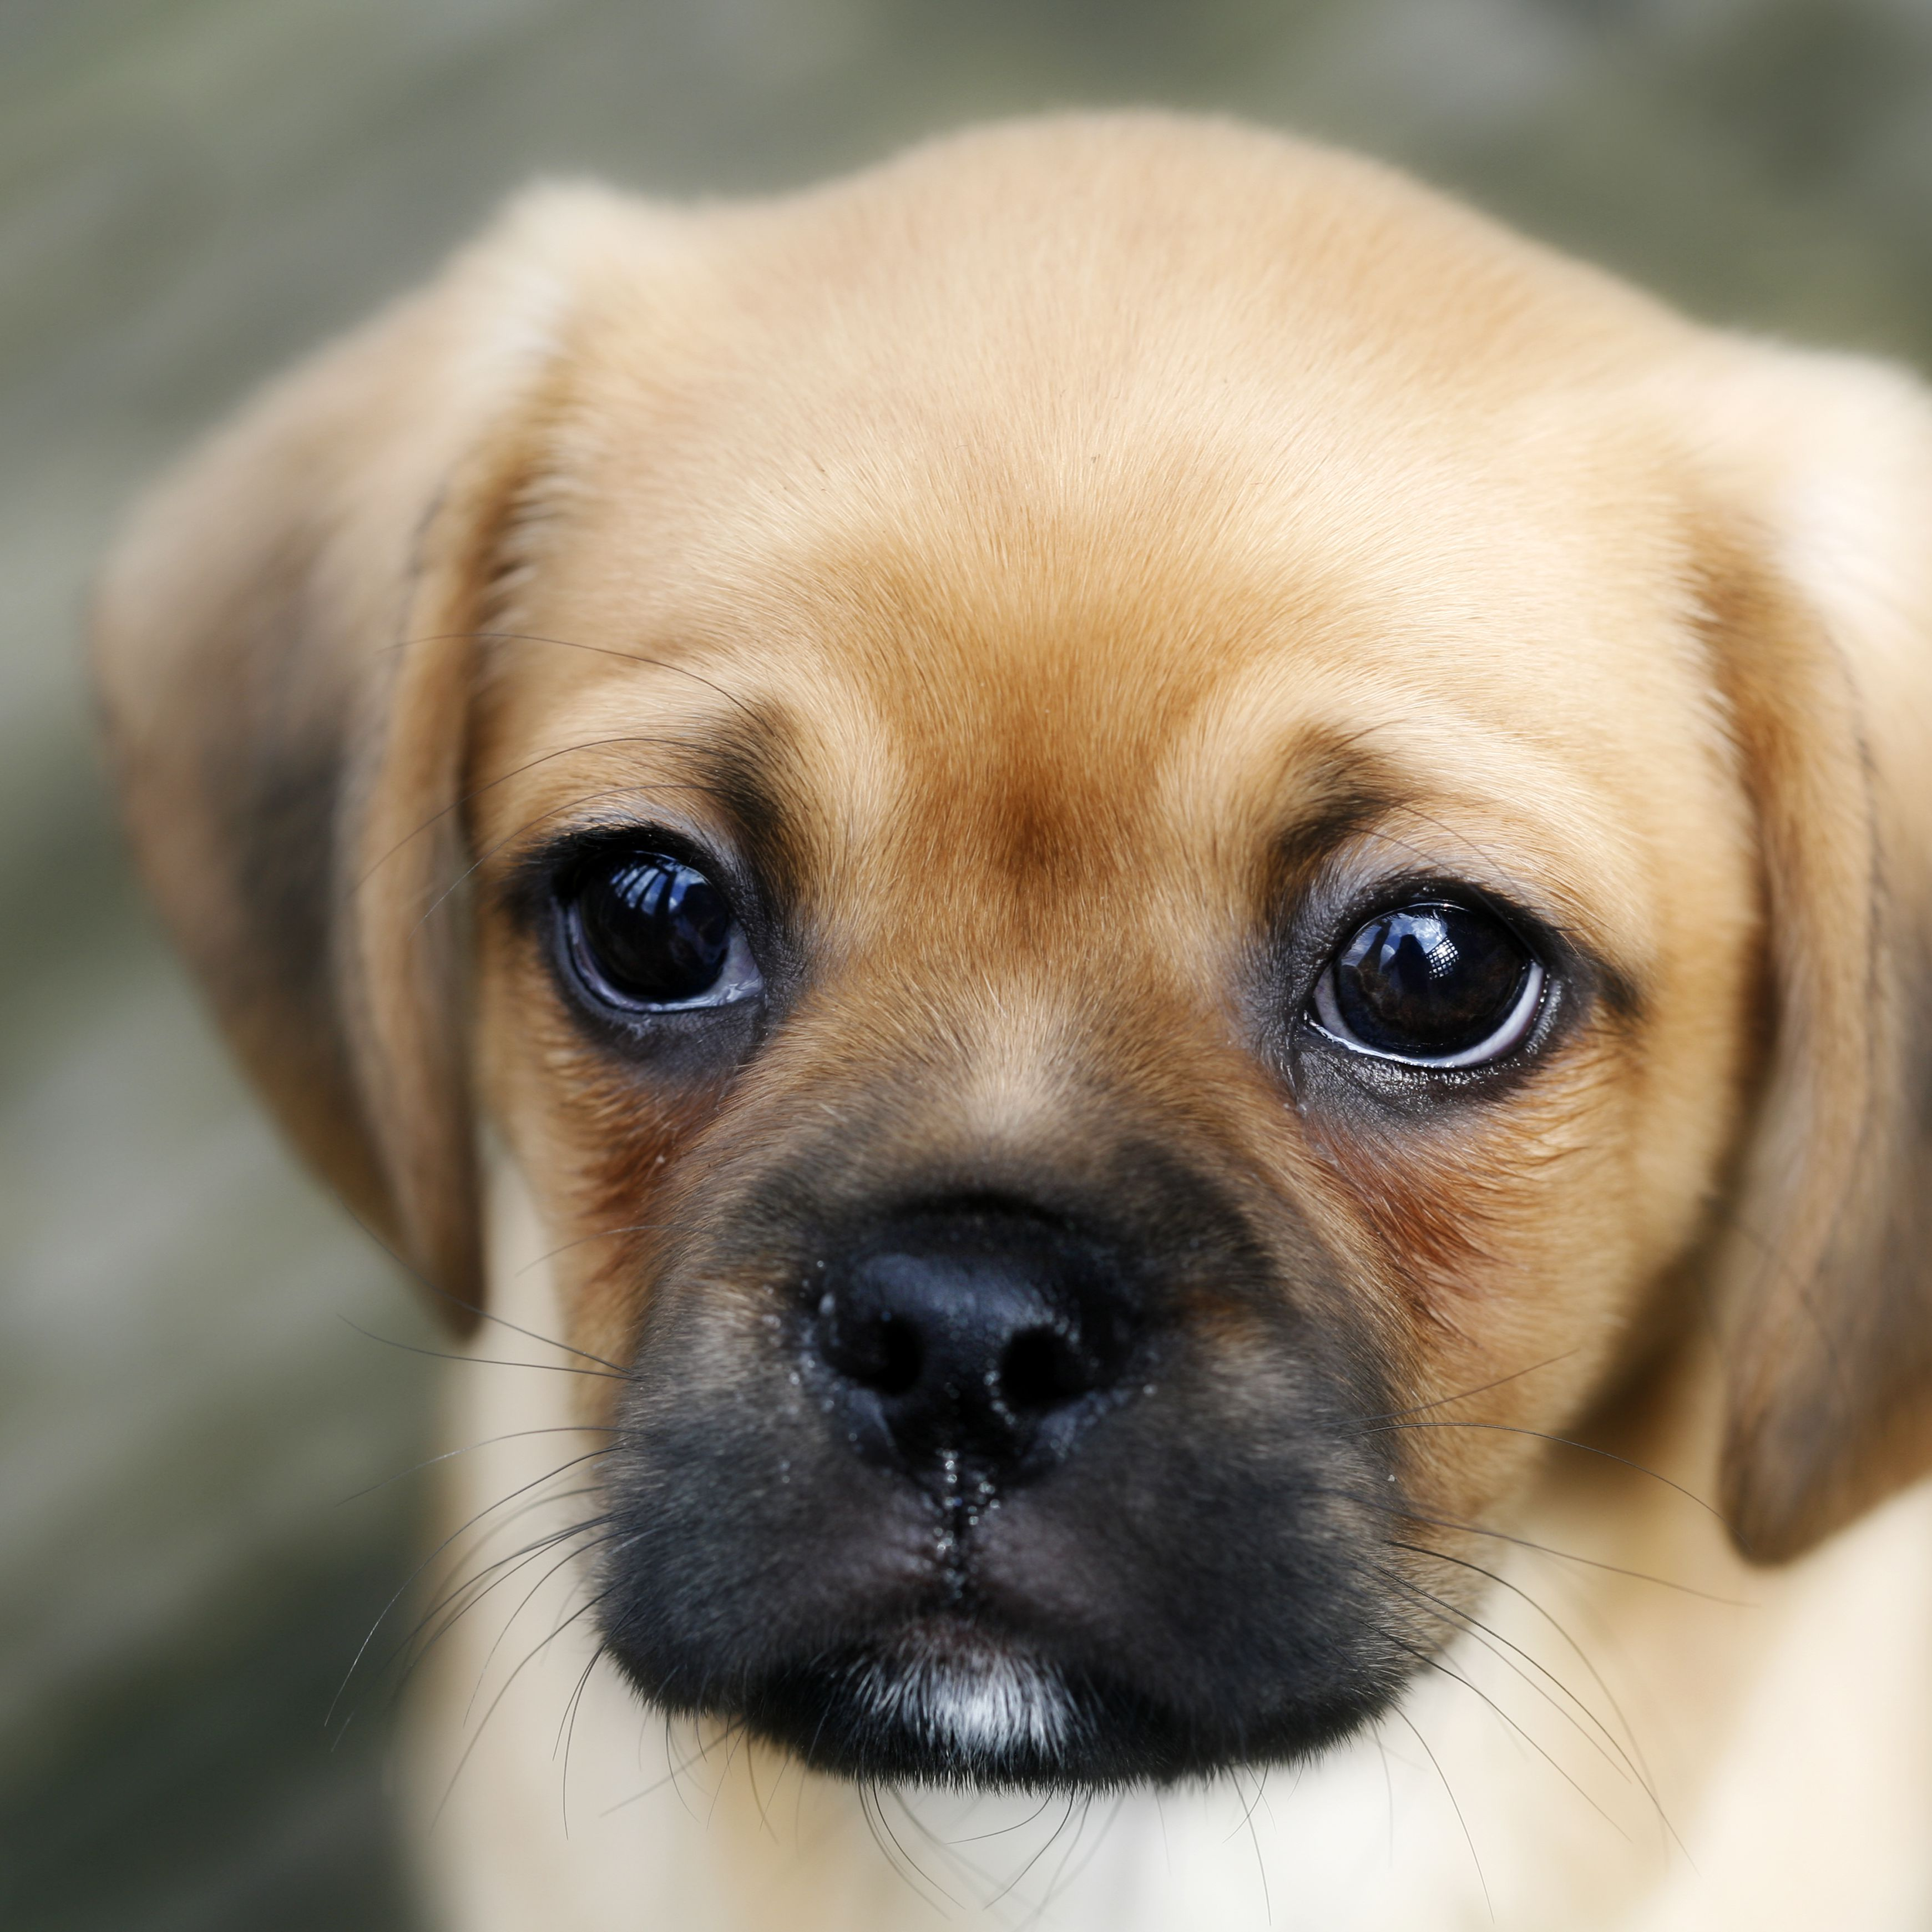 7 Common Puppy Diseases You Should Know